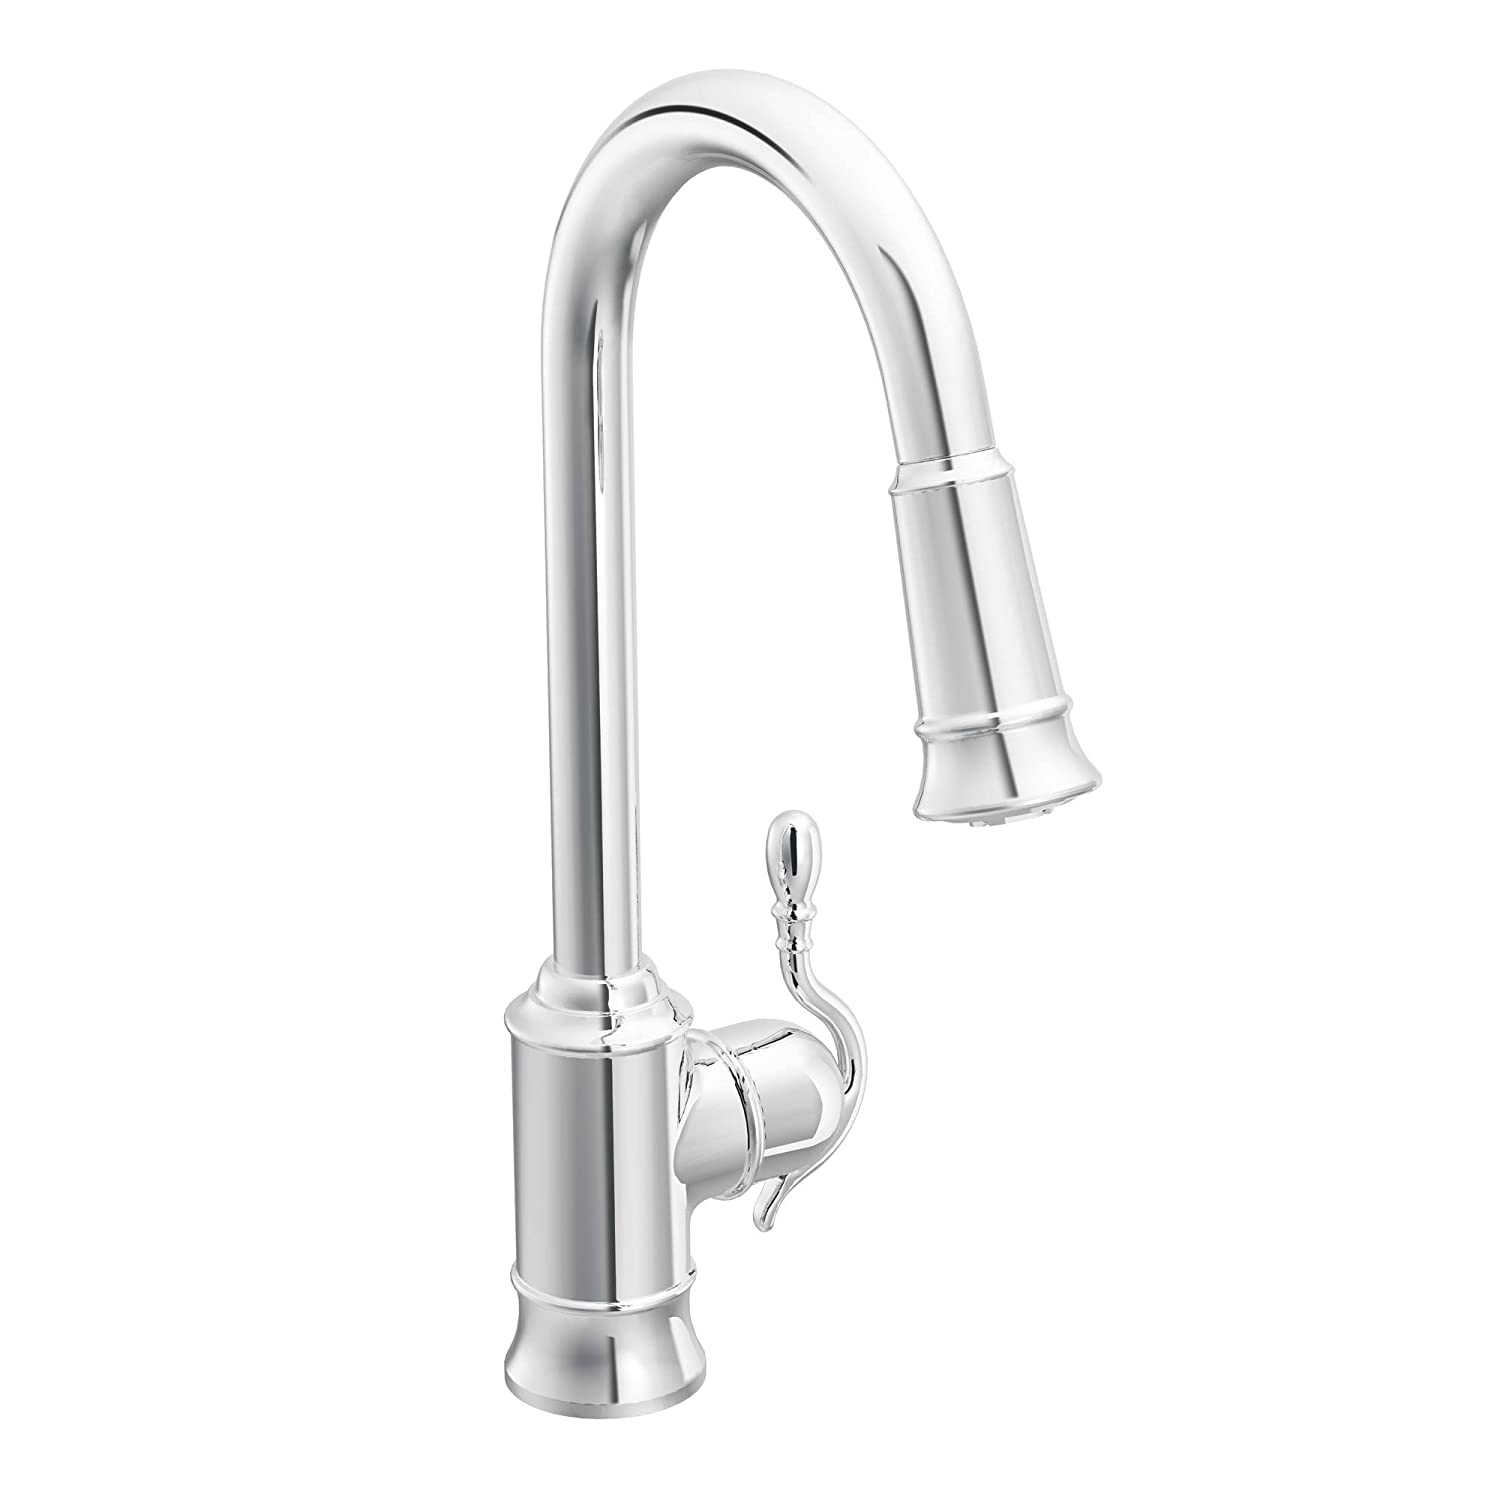 Moen 7615C Woodmere e Handle High Arc Pulldown Kitchen Faucet